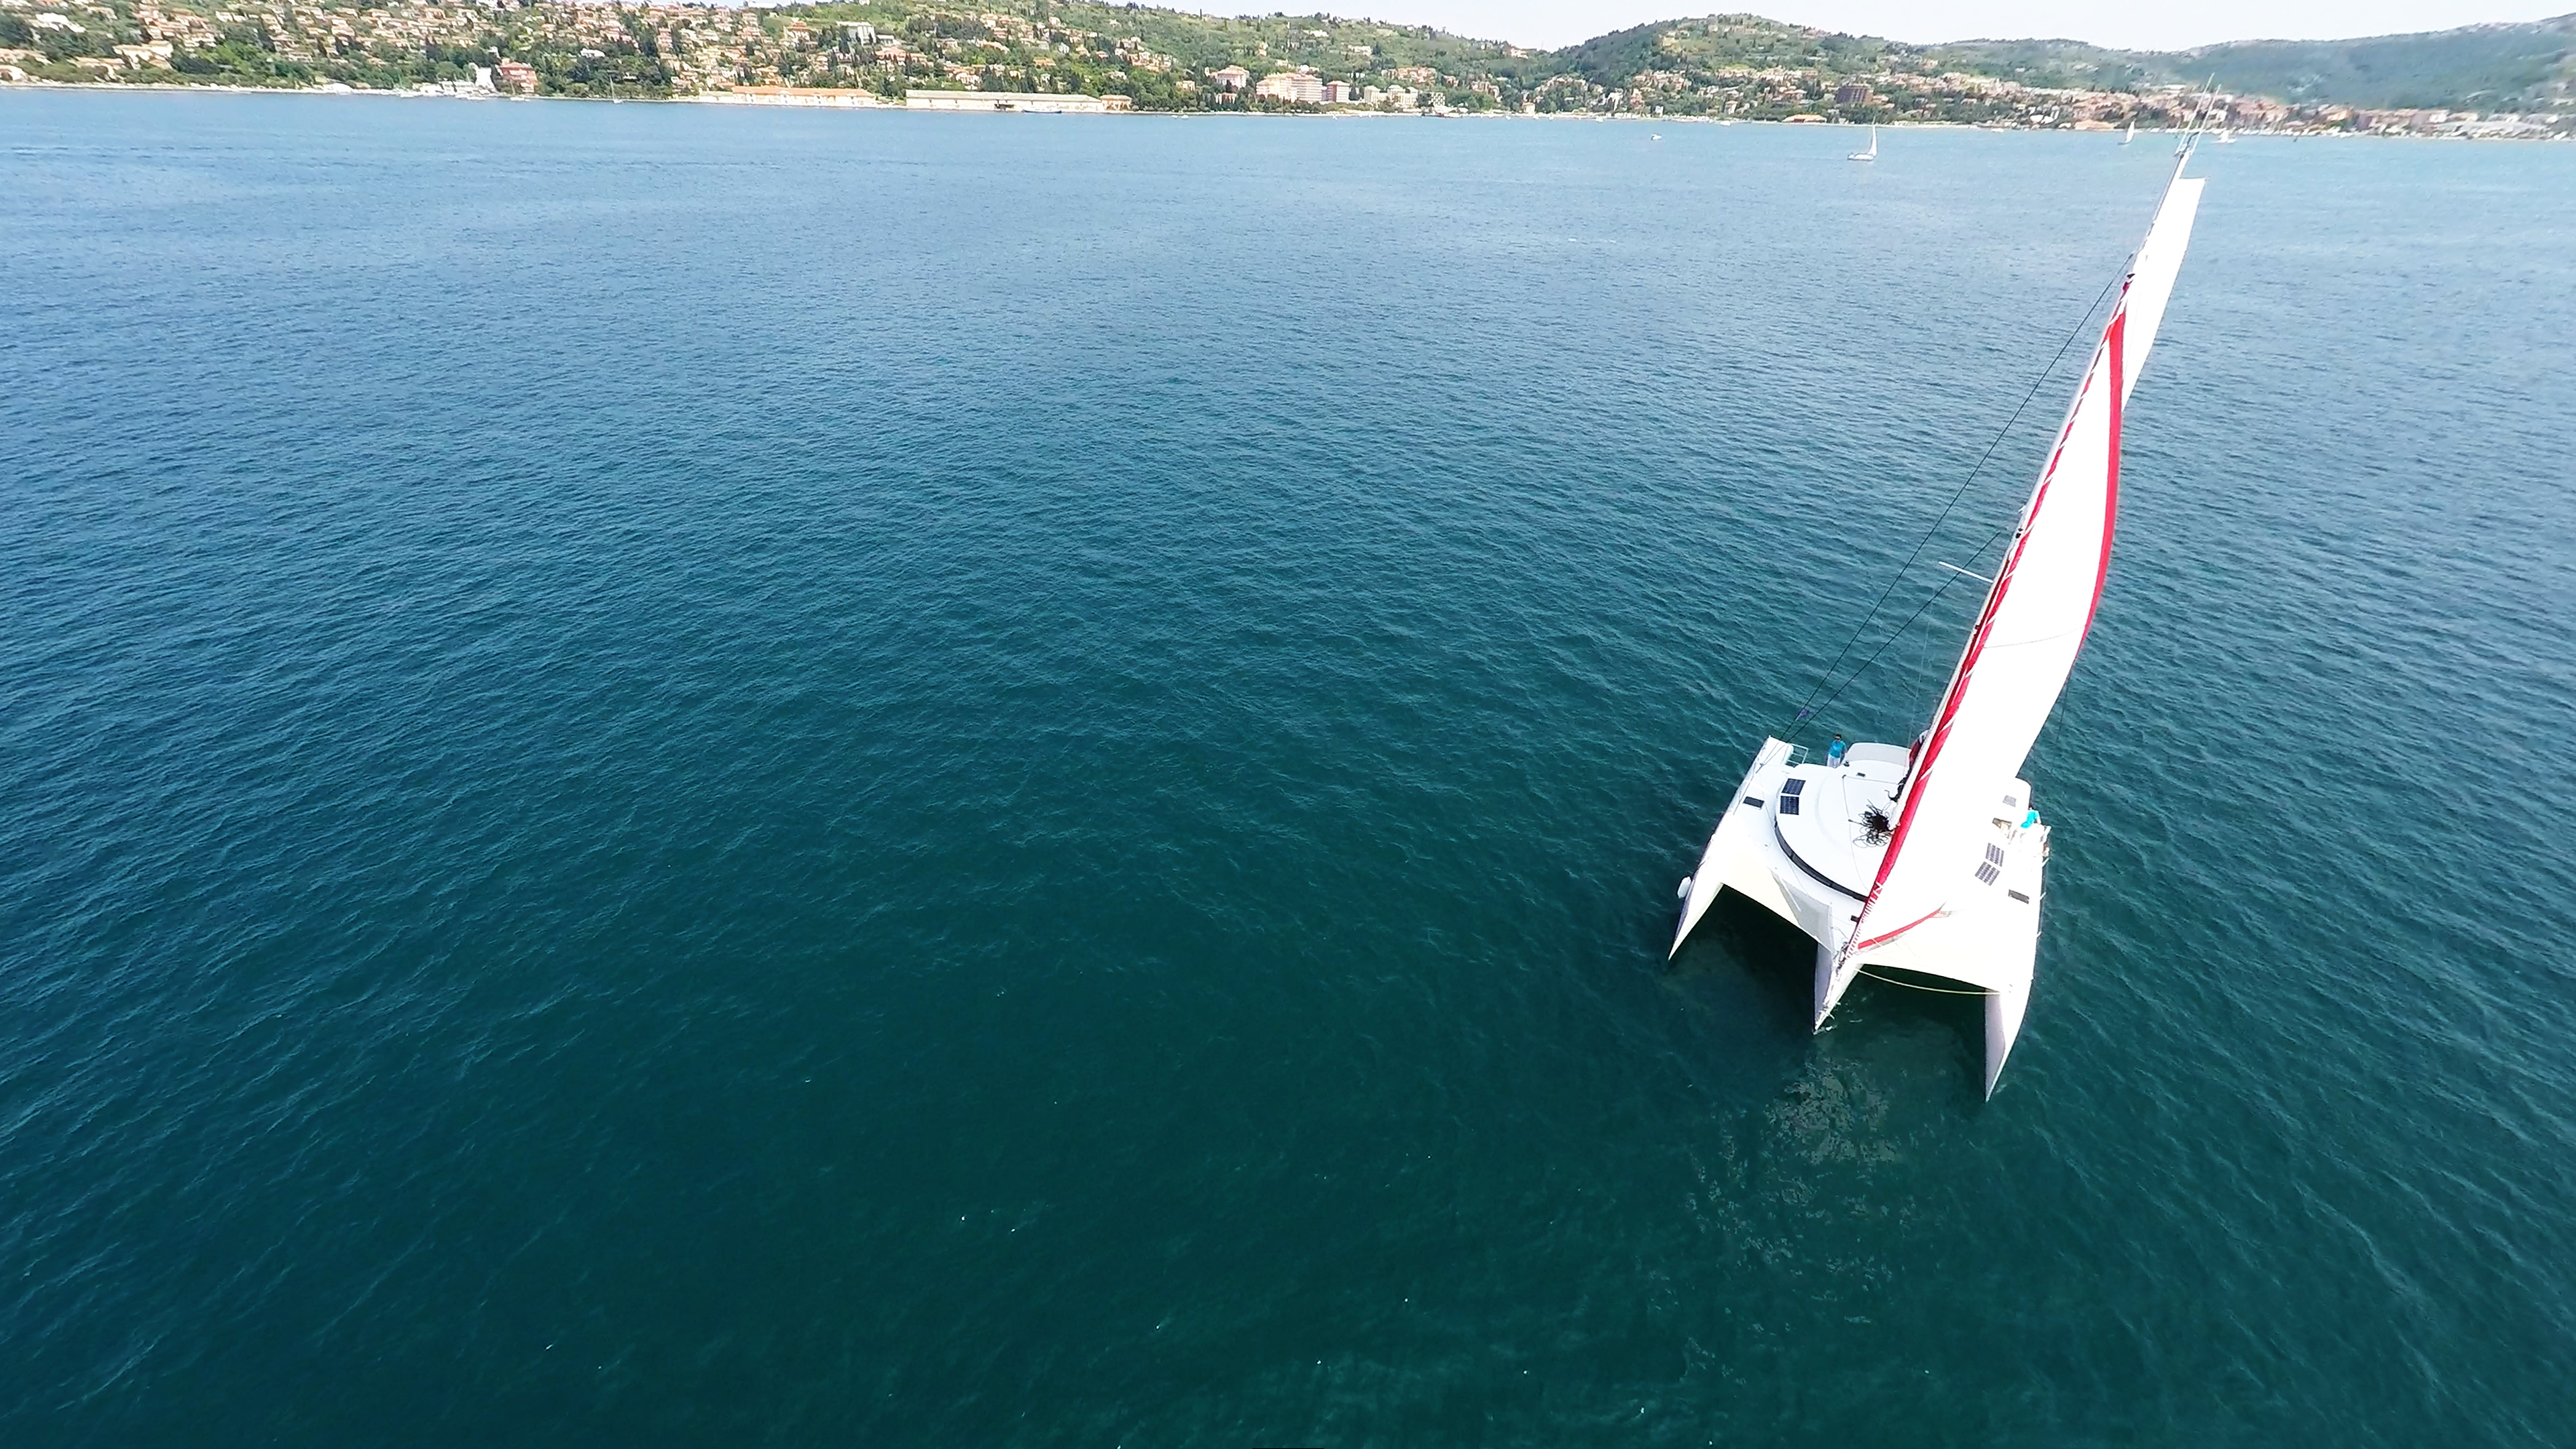 Free photos of sailing charter yacht Neel 45 trimaran